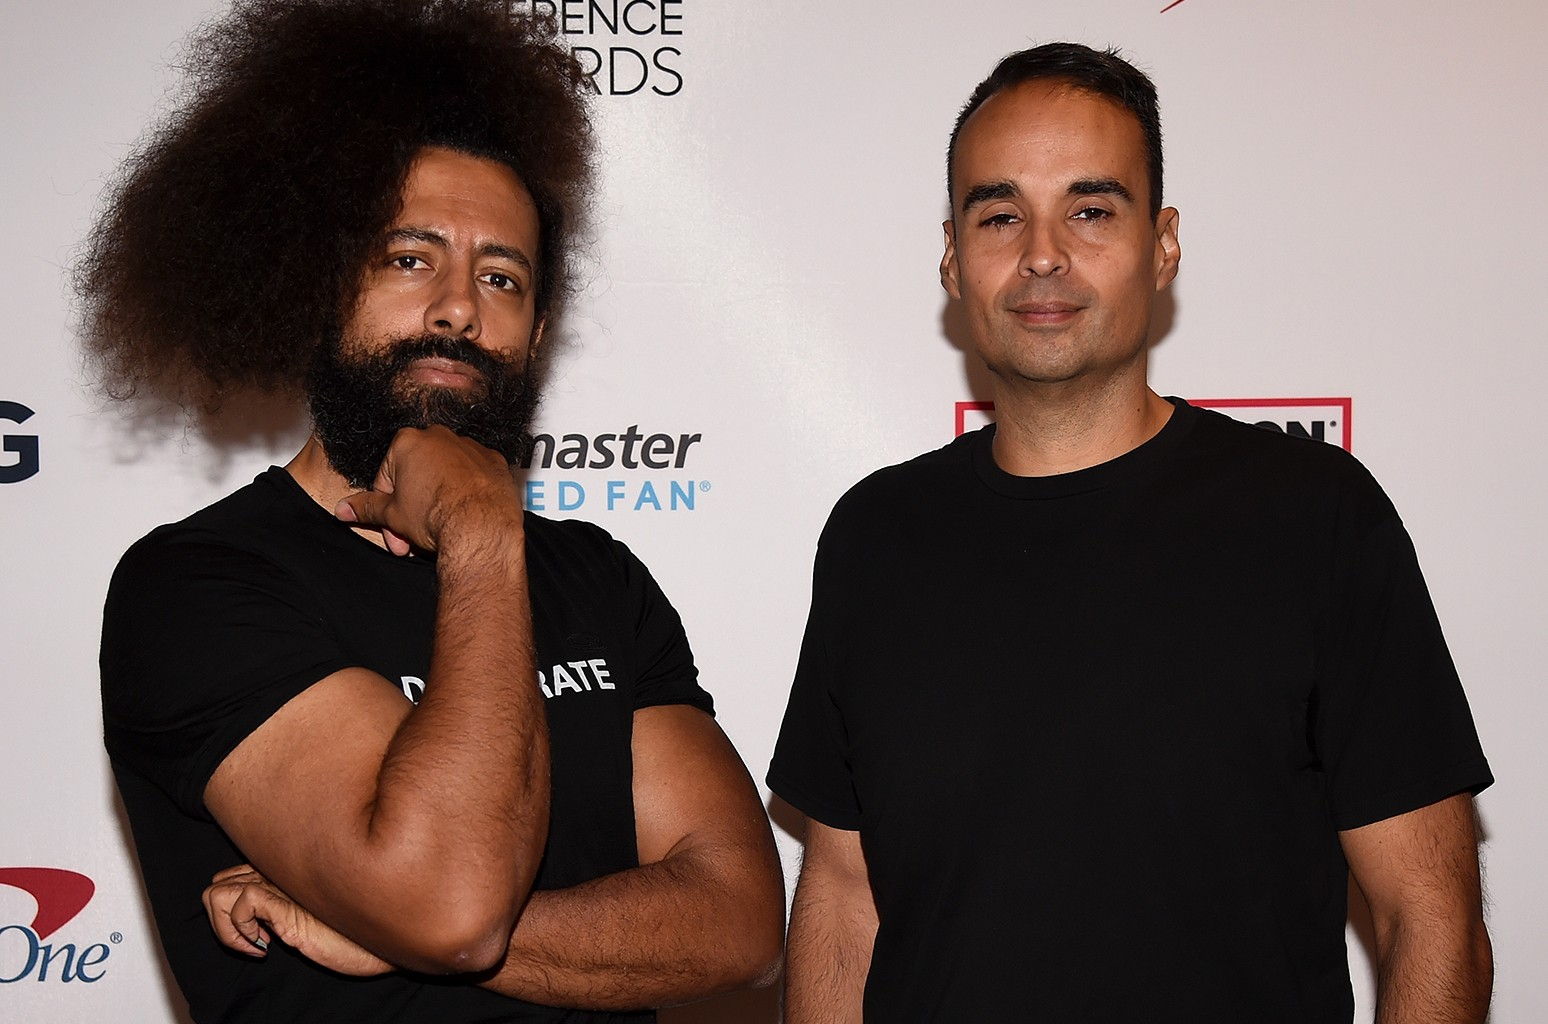 Reggie Watts and John Tejada